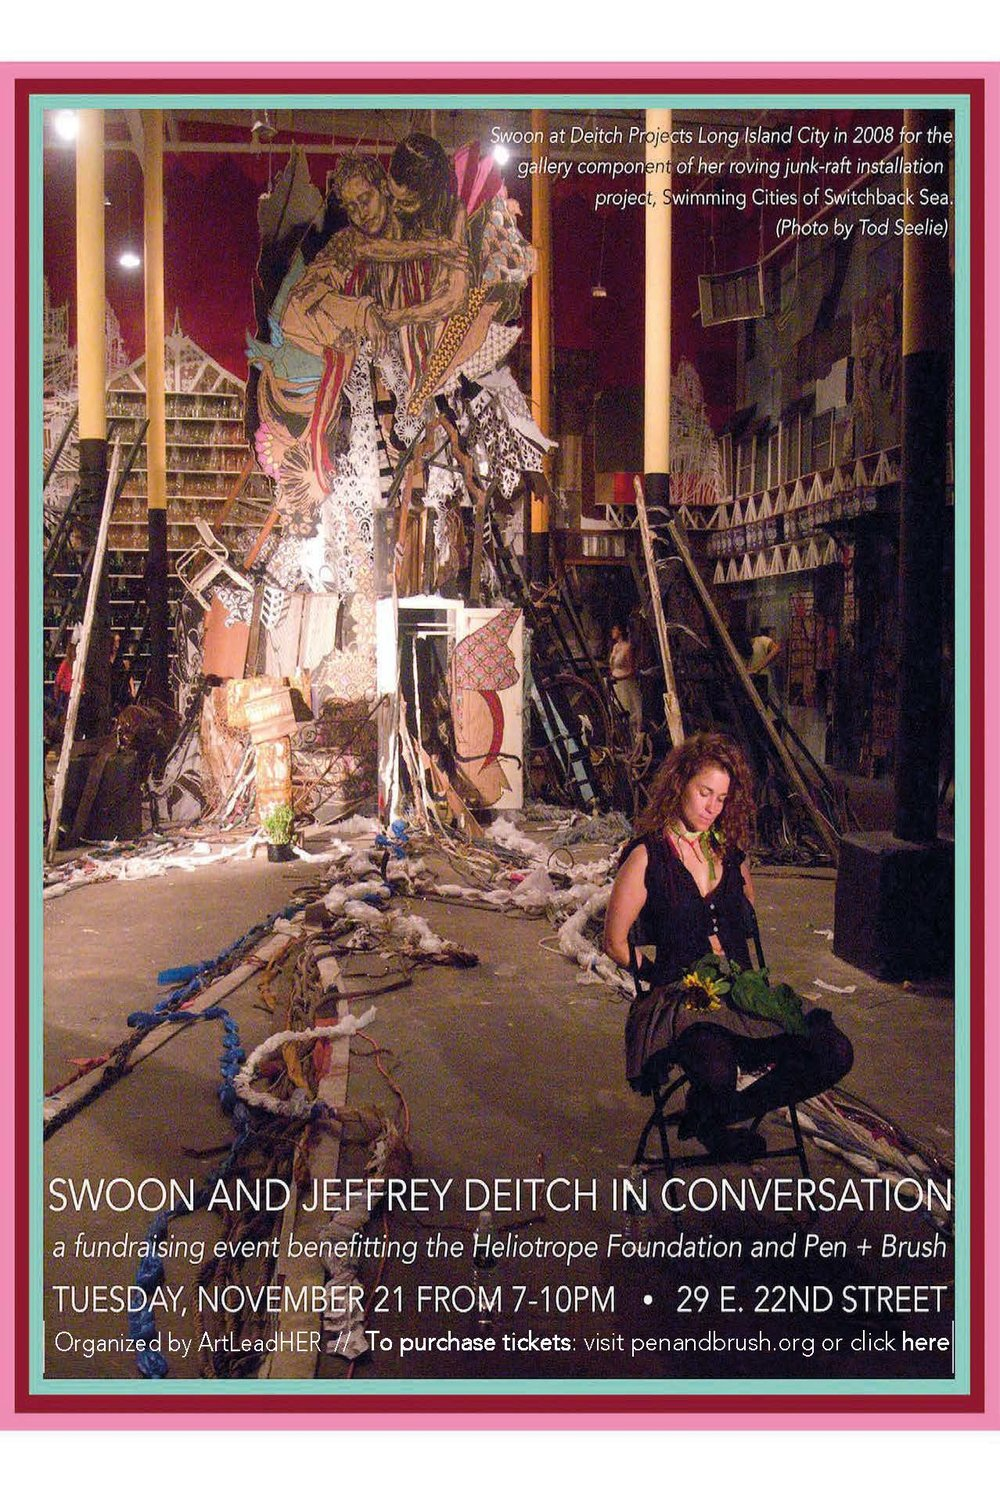 JOIN US!! Tuesday, November 21, 2017 at Pen & Brush gallery for an evening of art & a conversation between SWOON and JEFFREY DEITCH. The pair will talk street art, her work, and their epic artist-mentor relationship. The event is a fundraiser to benefit Pen + Brush and Heliotrope Foundation. Pen + Brush Gallery is a 123-year old non-profit institution that promotes gender equity by supporting emerging female artists & writers. 8 new Heliotrope prints by women artists, curated by Pietro Truba of 1xRUN, will be released and exhibited for this event. Each attendee will receive their choice of one print in a gift bag. Please come out for some inspiration shared by Swoon & Deitch, as well as Pen & Brush's current exhibit King Woman, curated by Mashonda Tifrere, founder of ArtLeadHER ... all while supporting our organizations that aim for fostering social change. Tuesday, November 21, 2017 7-10pm The Pen and Brush, Inc. 29 East 22nd Street, NYC   The Heliotrope Print Suite Winter 2017 Collection Featuring 8 New Limited Edition Prints Curated By 1xRUN   Swoon Monica Canilao, Xara Thustra, Ektor Garcia & Elena Stonaker Mary Iverson Lauren Napolitano Ouizi Michelle Tanguay Ellen Rutt Sheryo  Visit  http://www.penandbrush.org//event/artist-and-mentor-conversation-deitch-swoon1  for more info. Purchase advance tickets here:  https://www.eventbrite.com/e/deitch-x-swoon-tickets-39234252706   The Winter 2017 Heliotrope Print suite will be first available at the Pen + Brush Fundraiser. The prints will be available to the public on Wednesday, 11/22 at  heliotropeprints.org  and  1xRUN.com  and are priced at $60 each.